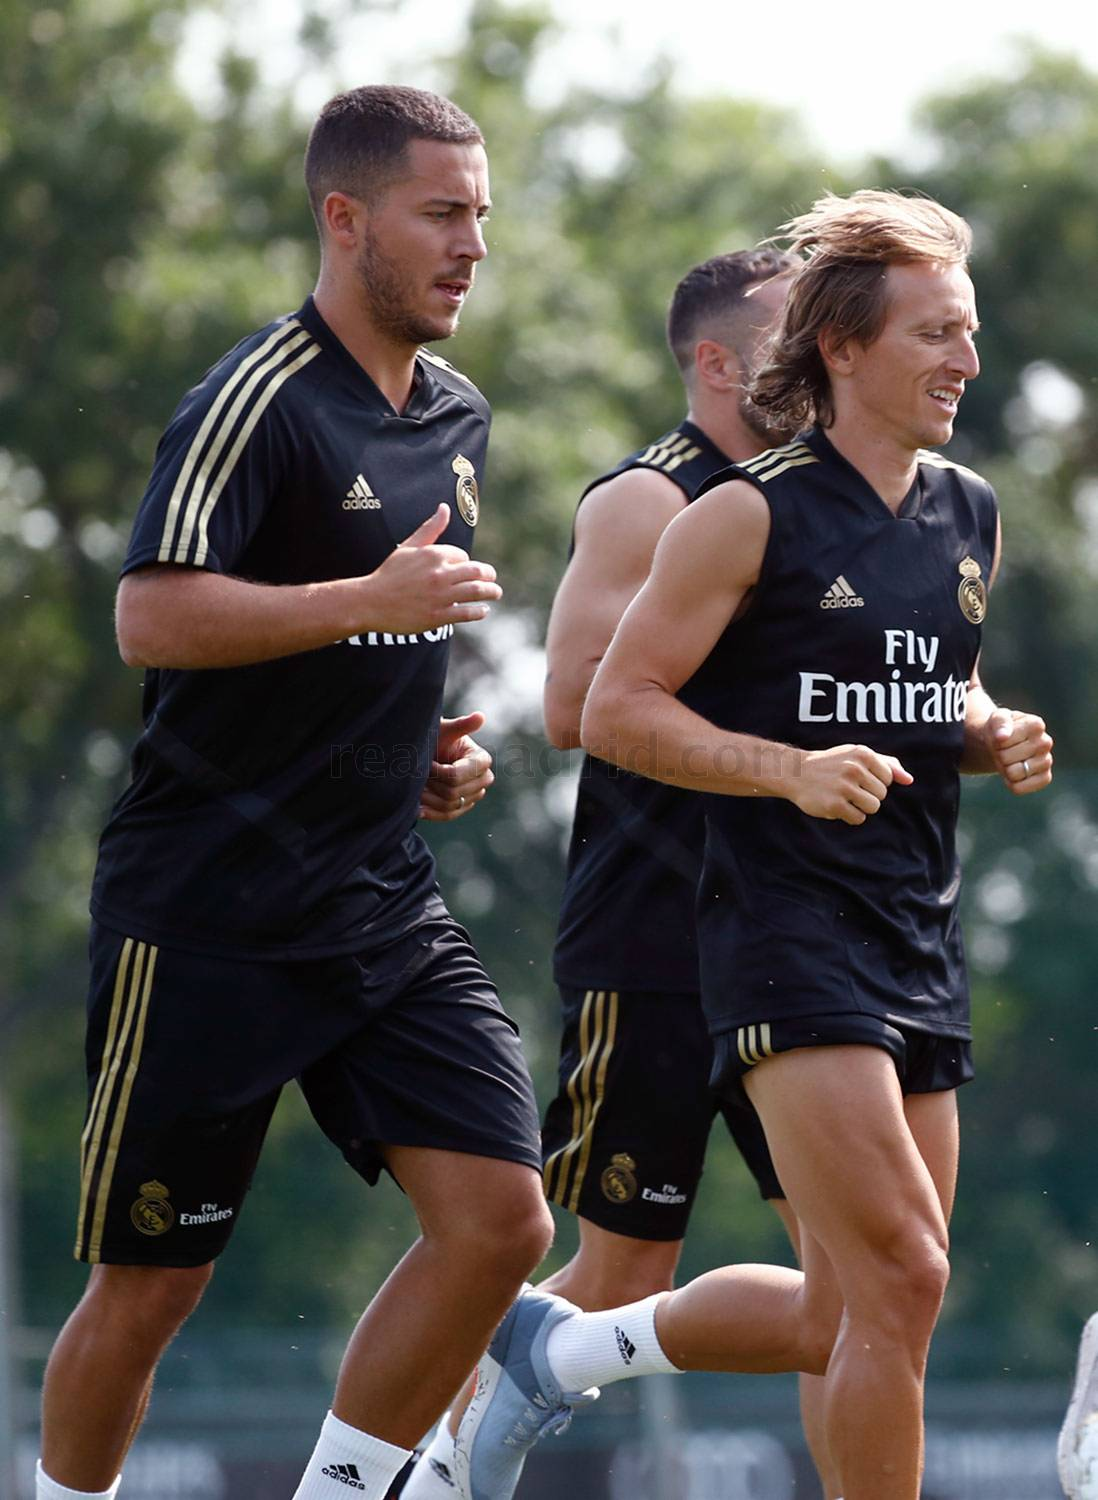 Real Madrid - Entrenamiento del Real Madrid en Montreal - 10-07-2019